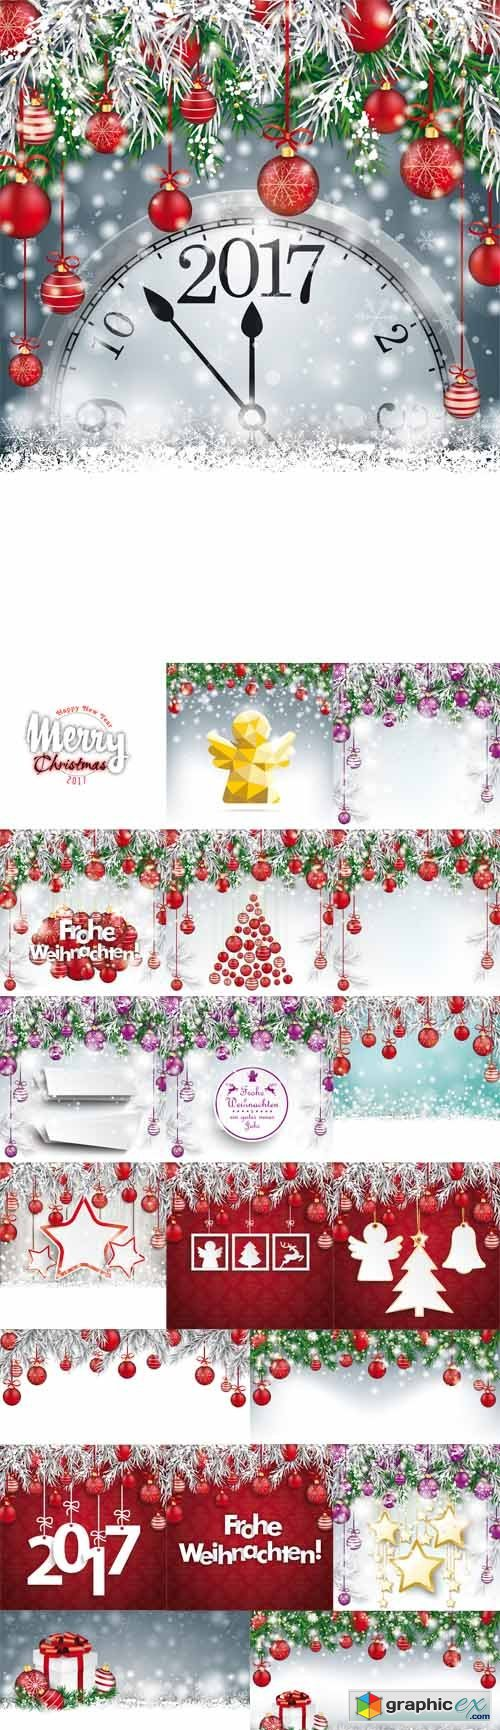 Christmas Frozen Backgrounds with Baubles Banners